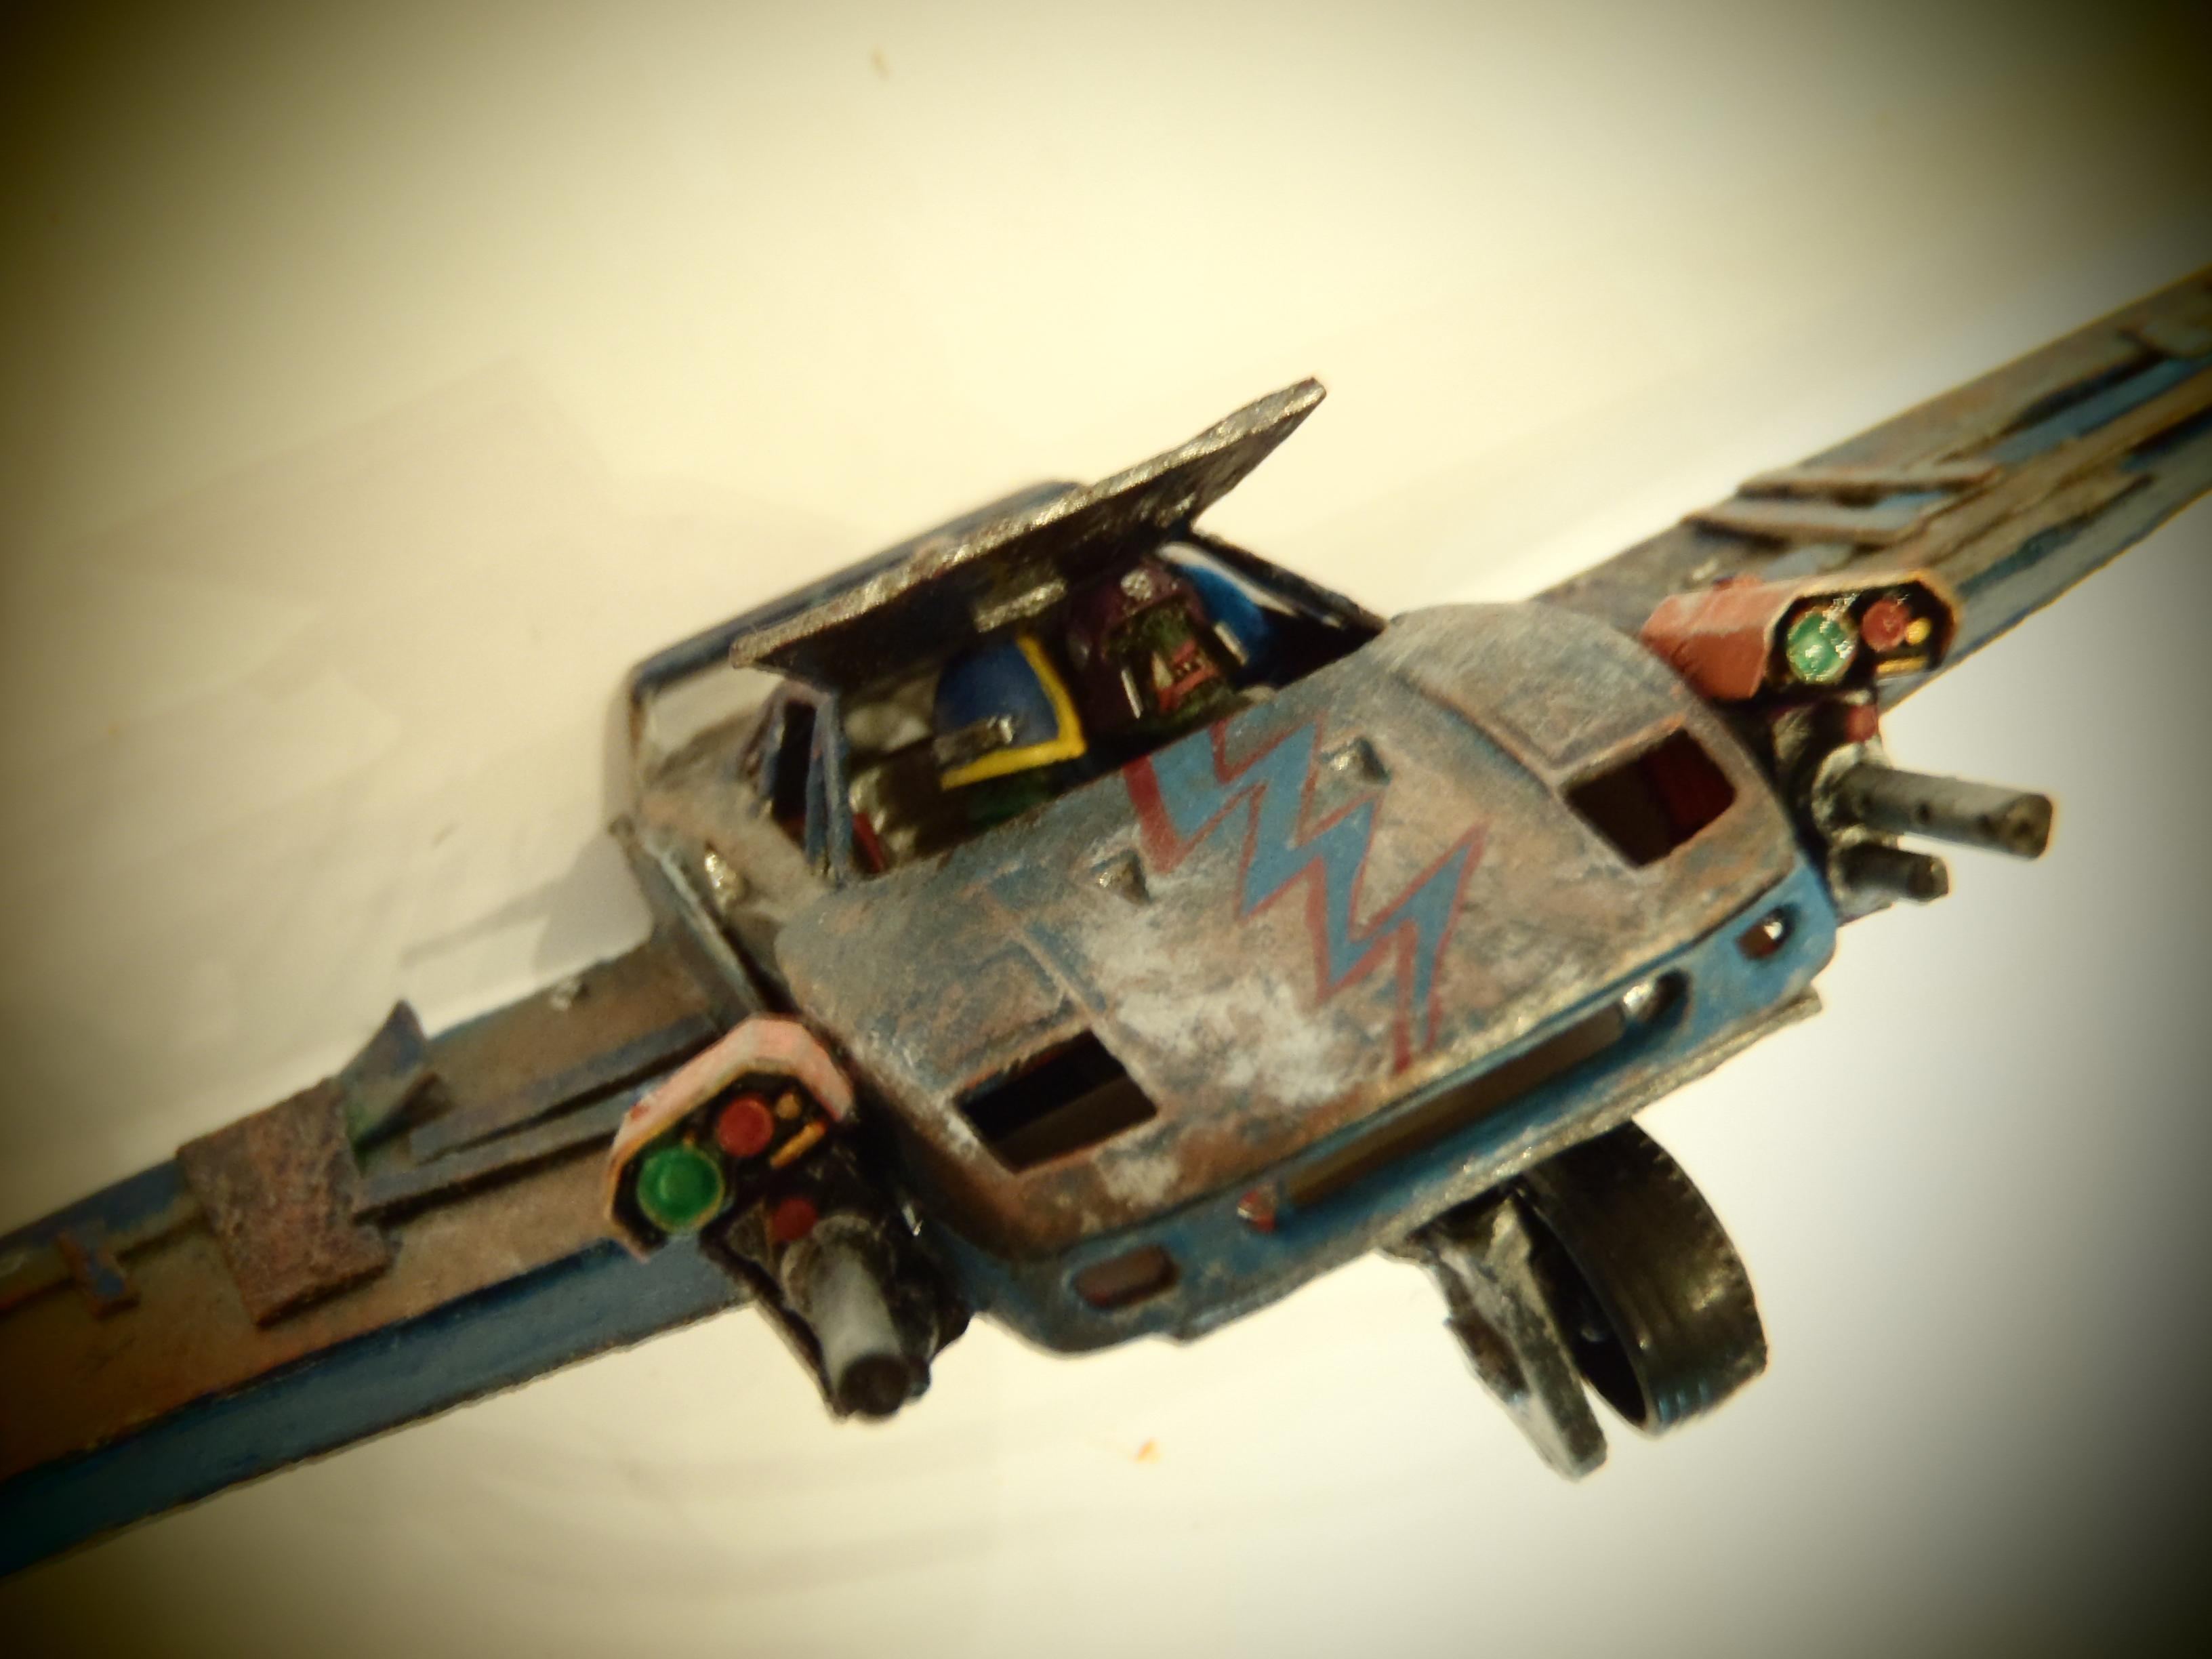 Bomber, Cars, Conversion, Death, Orks, Plane, Skull, Toy, Vehicle